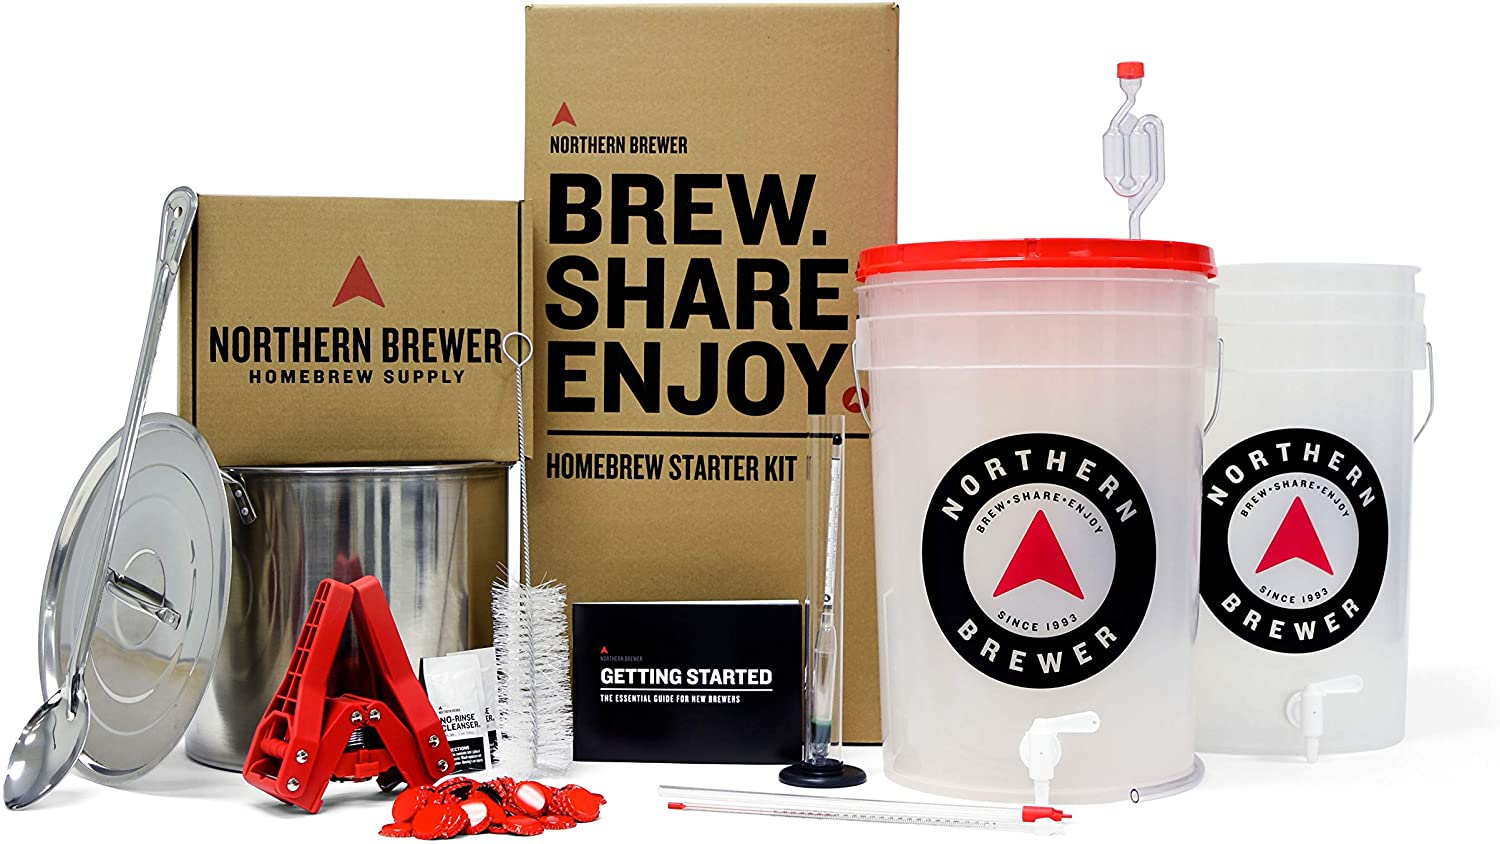 Northern Brewer Homebrewing Starter Set